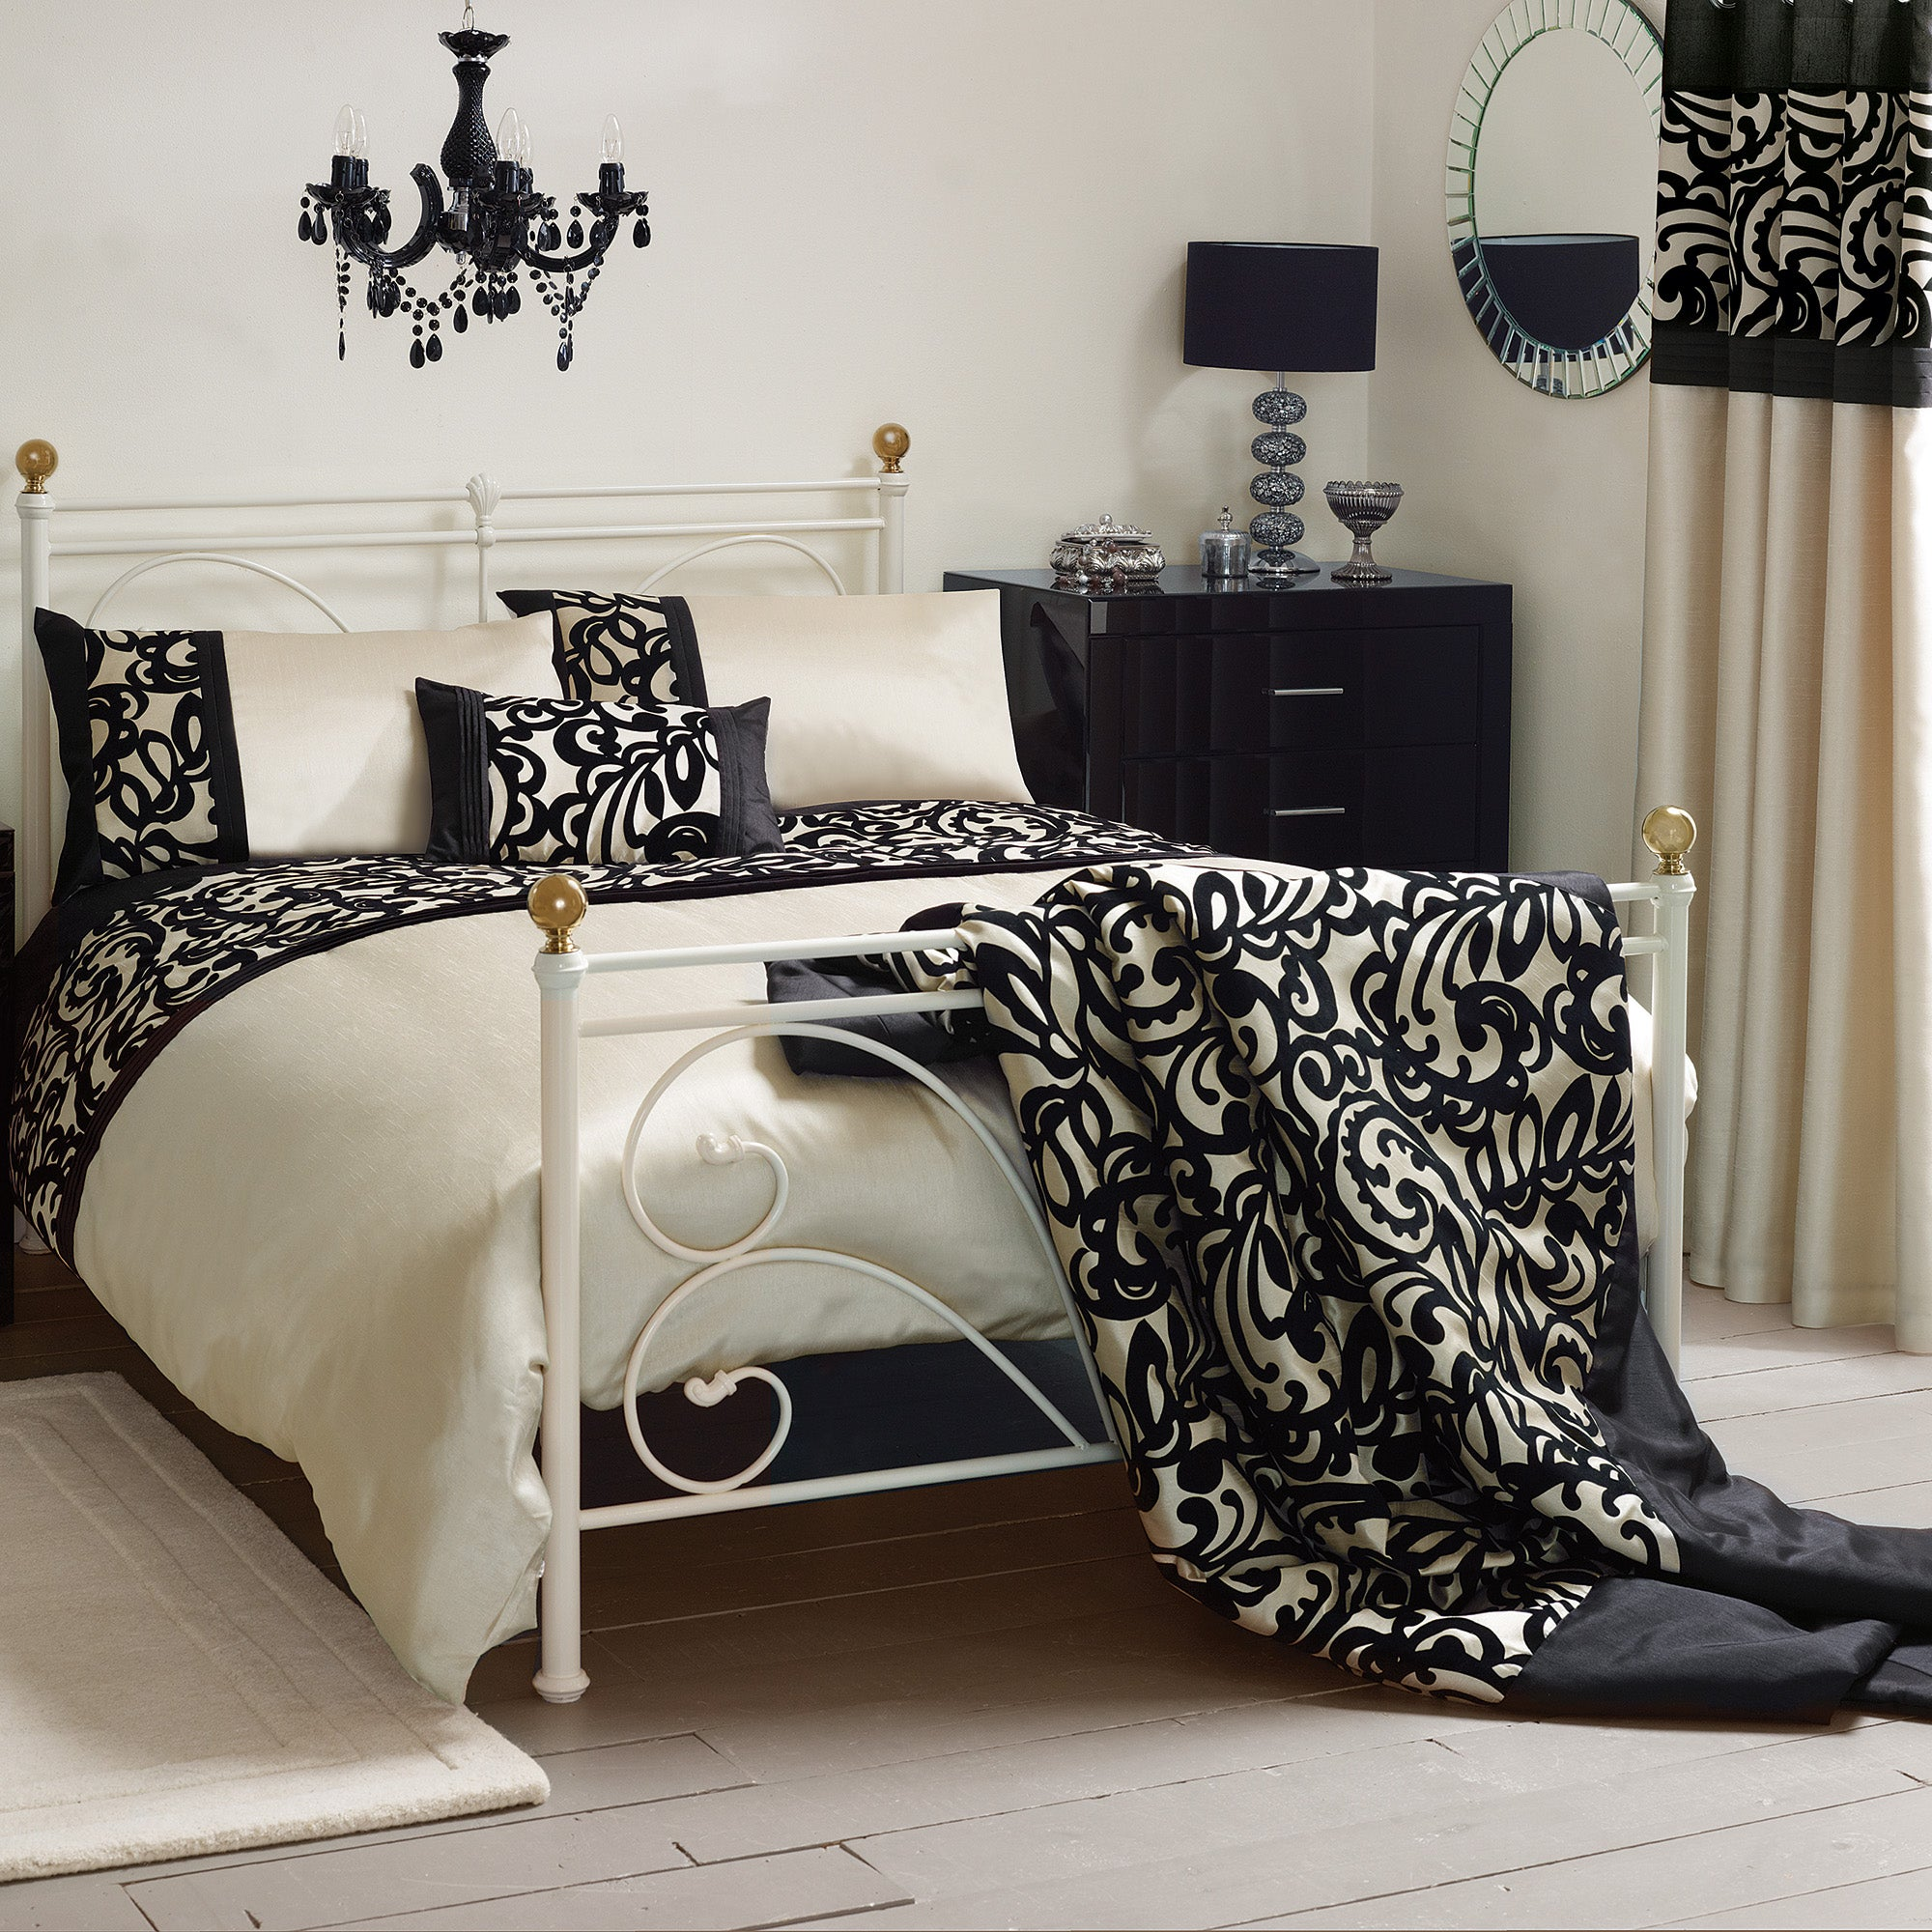 Black Baroque Flock Bed Linen Collection